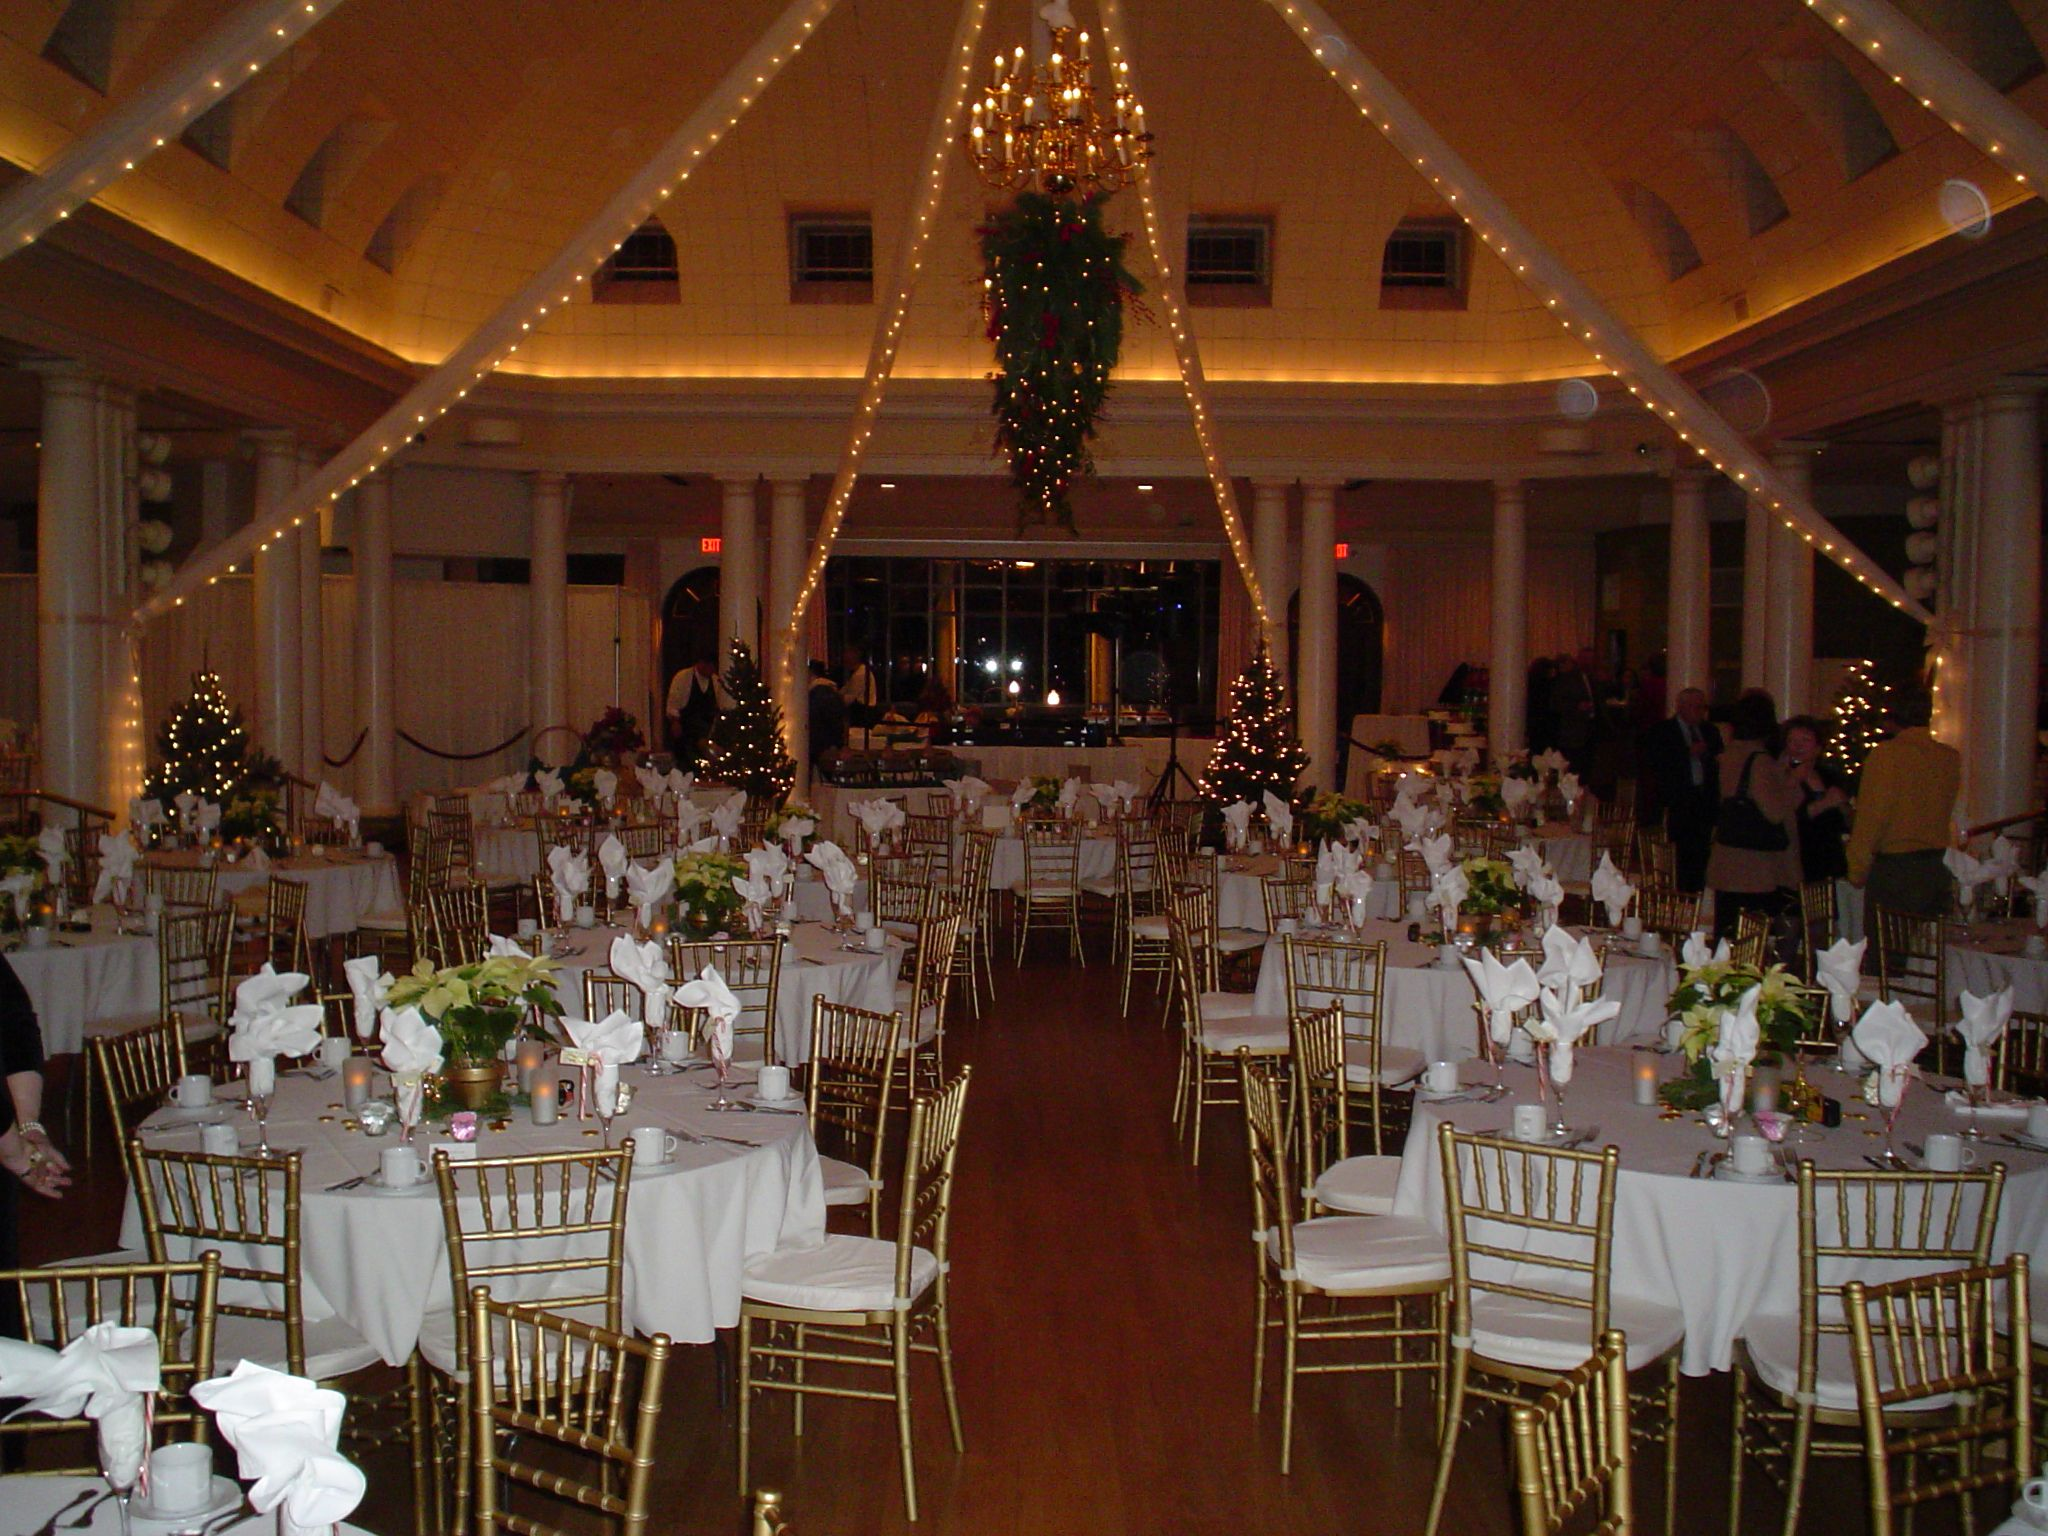 Wedding Ceremony And Reception At The Elegant Historic Riviera Docks Ballroom In Lake Geneva